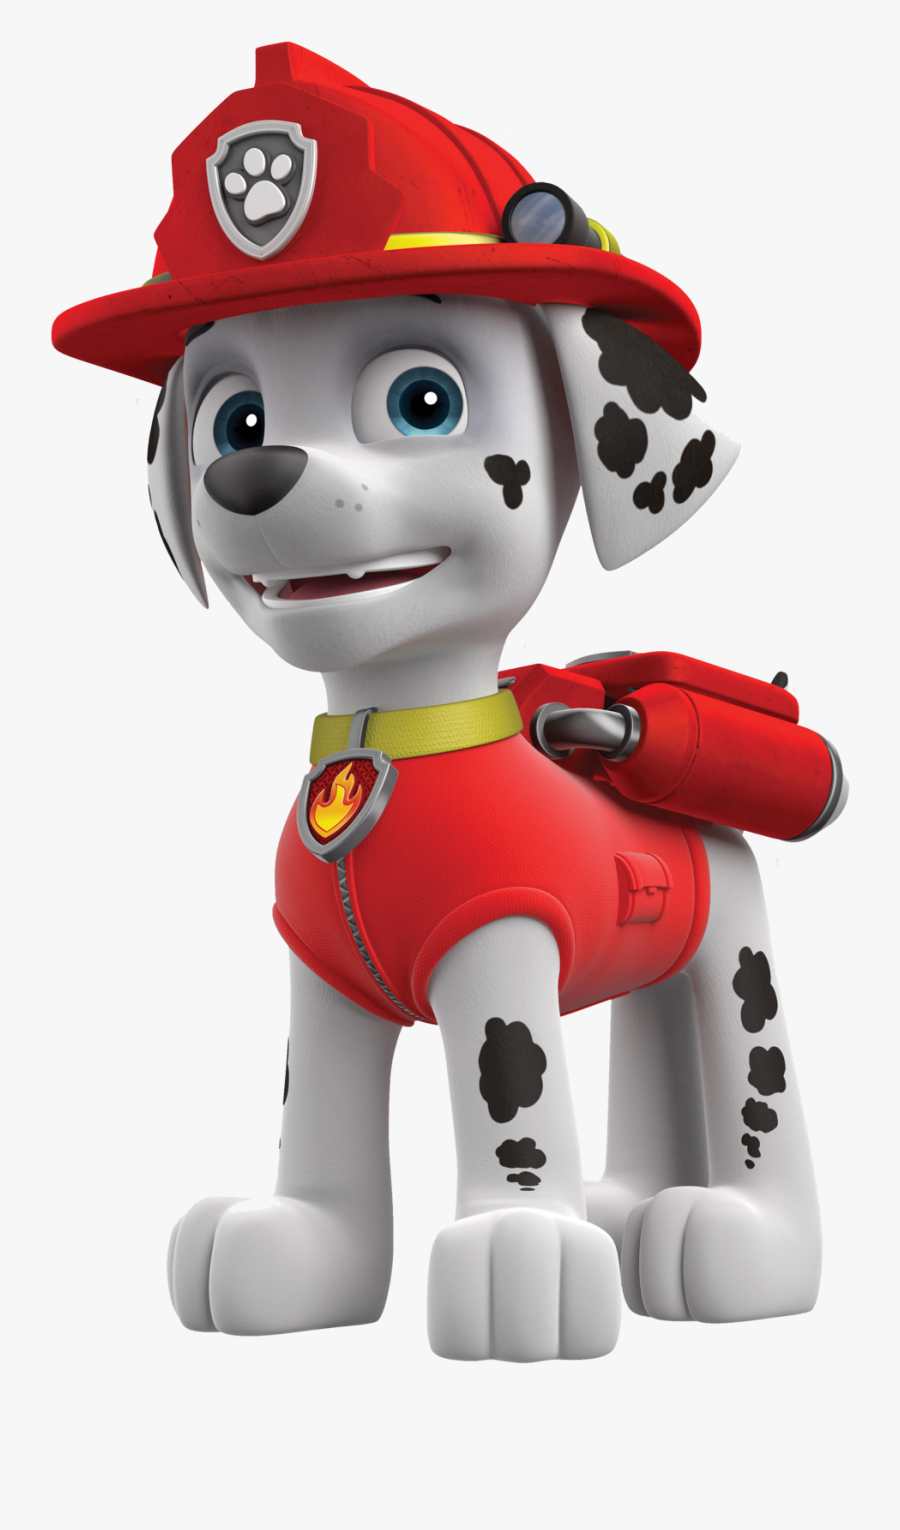 Marshall Paw Patrol Png Clipart, Transparent Clipart